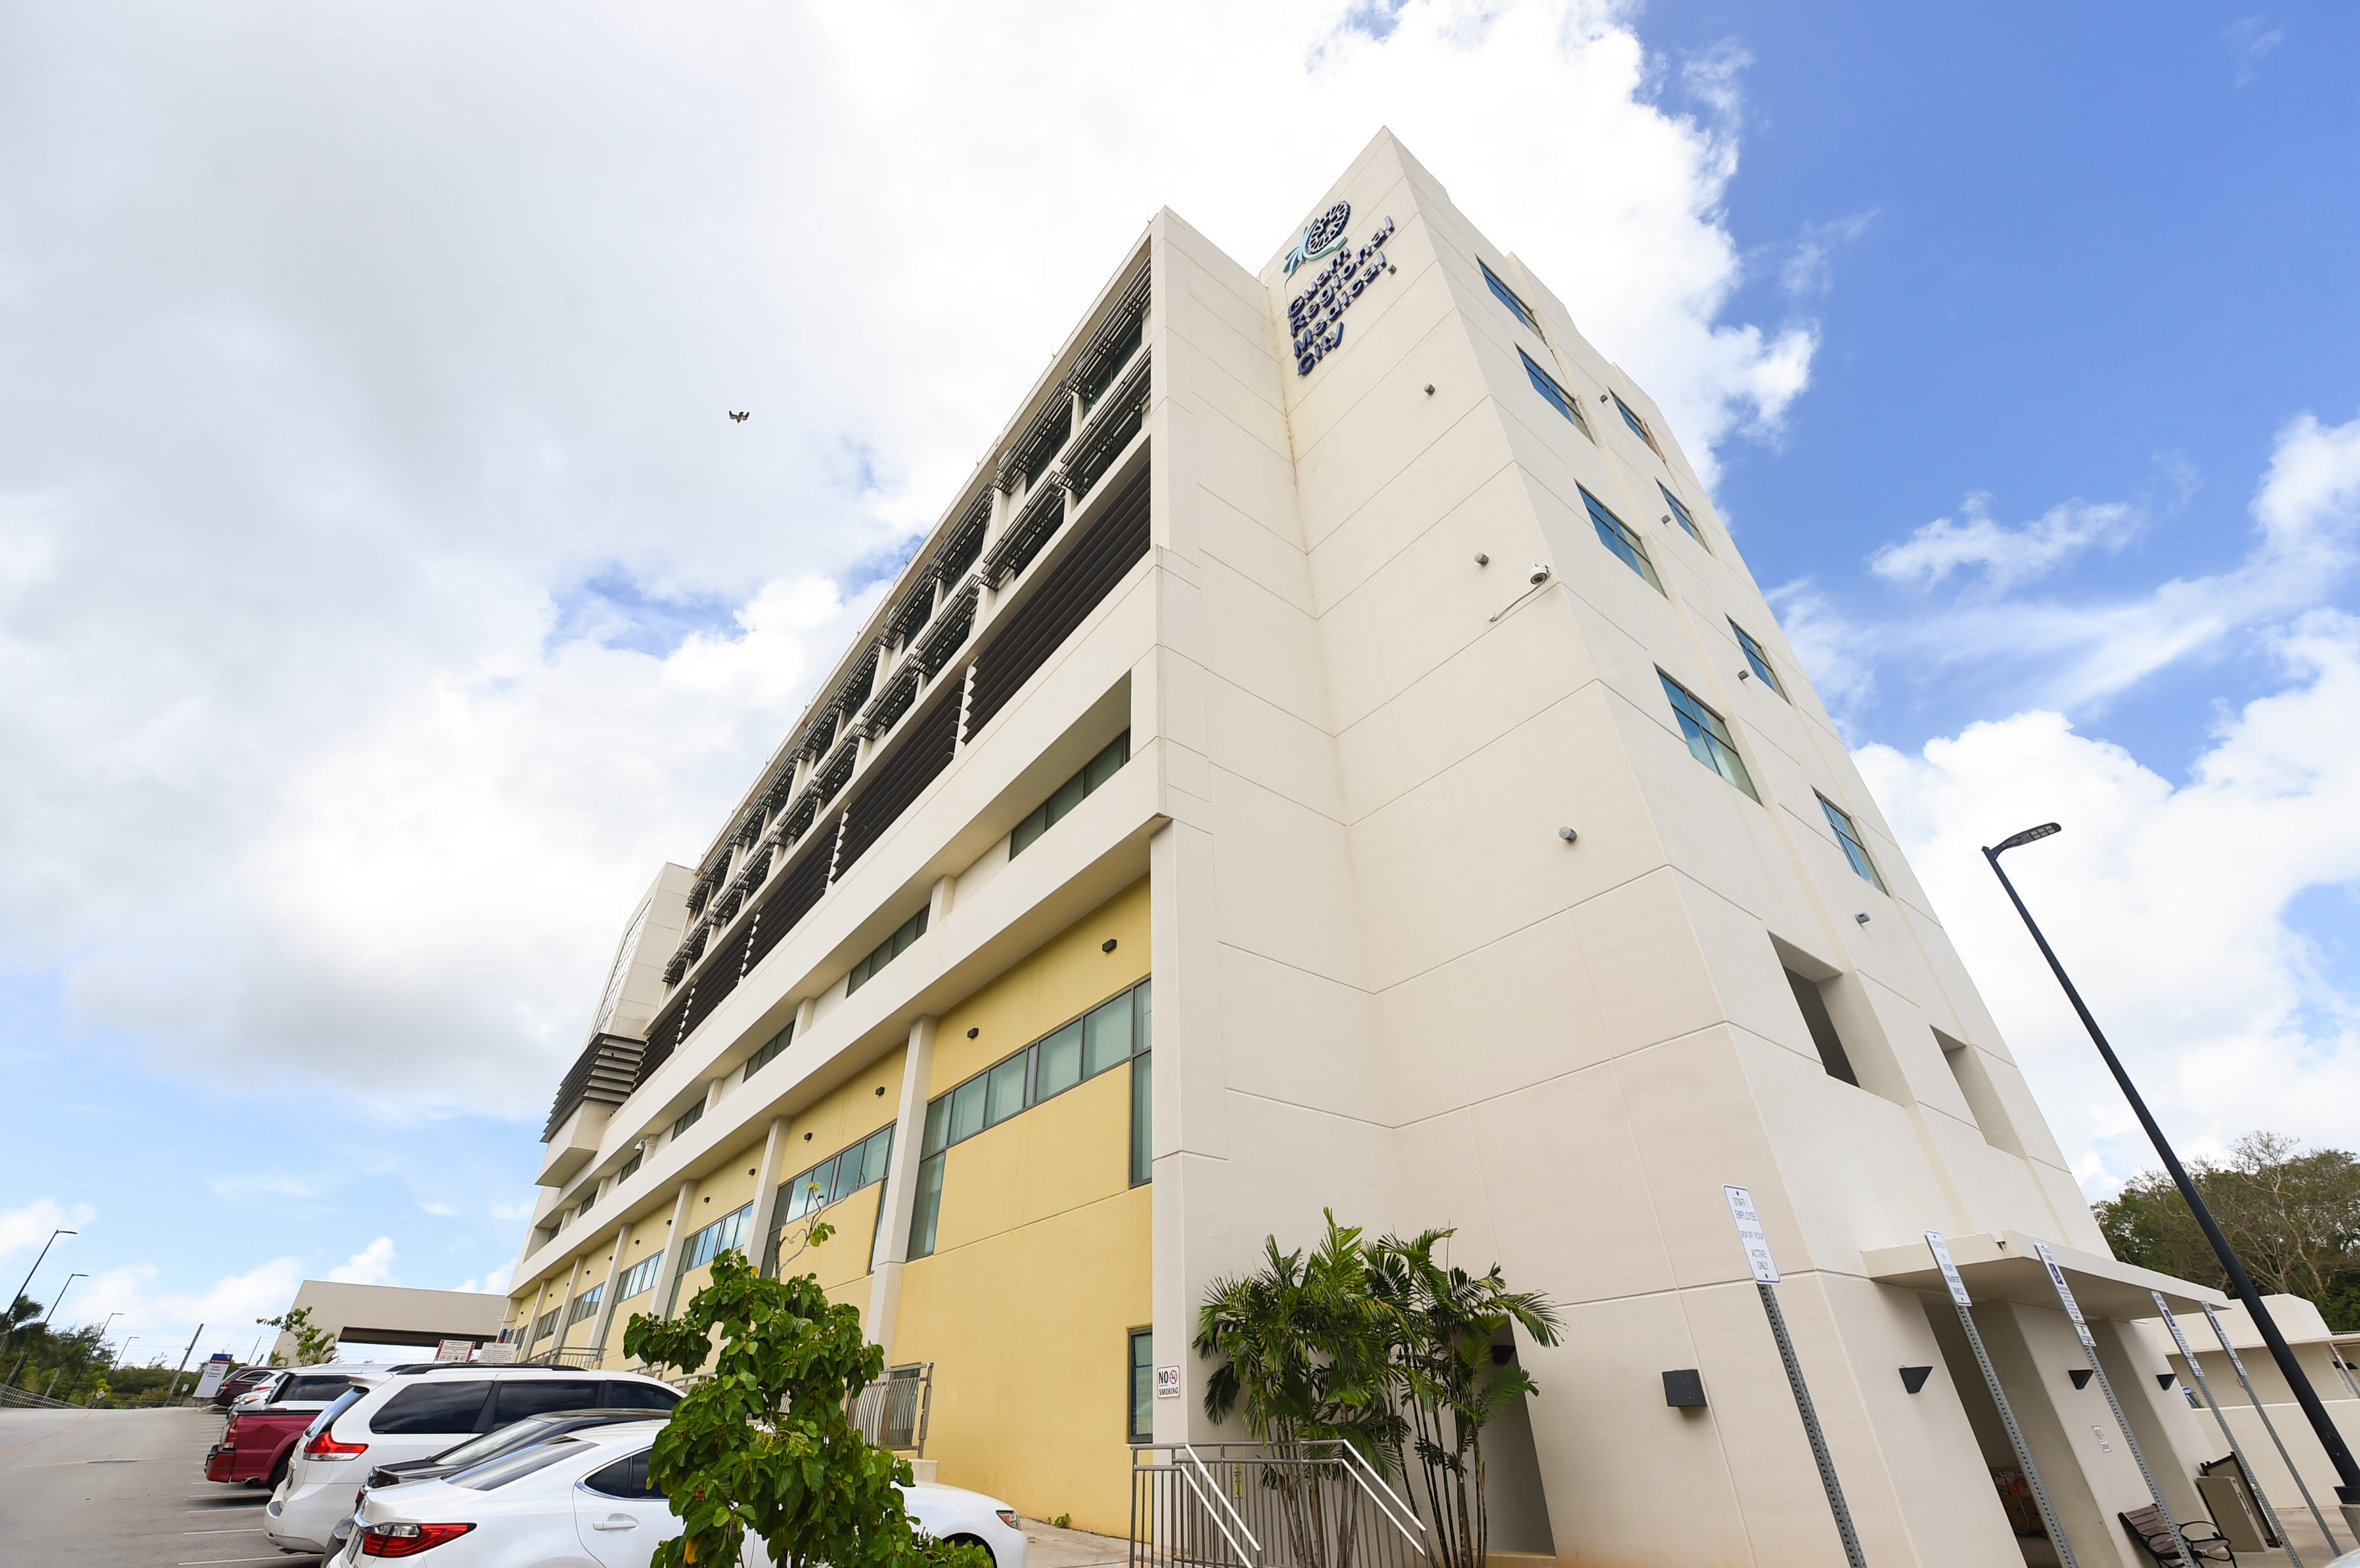 Guam Regional Medical Metropolis: No vaccinations at the moment